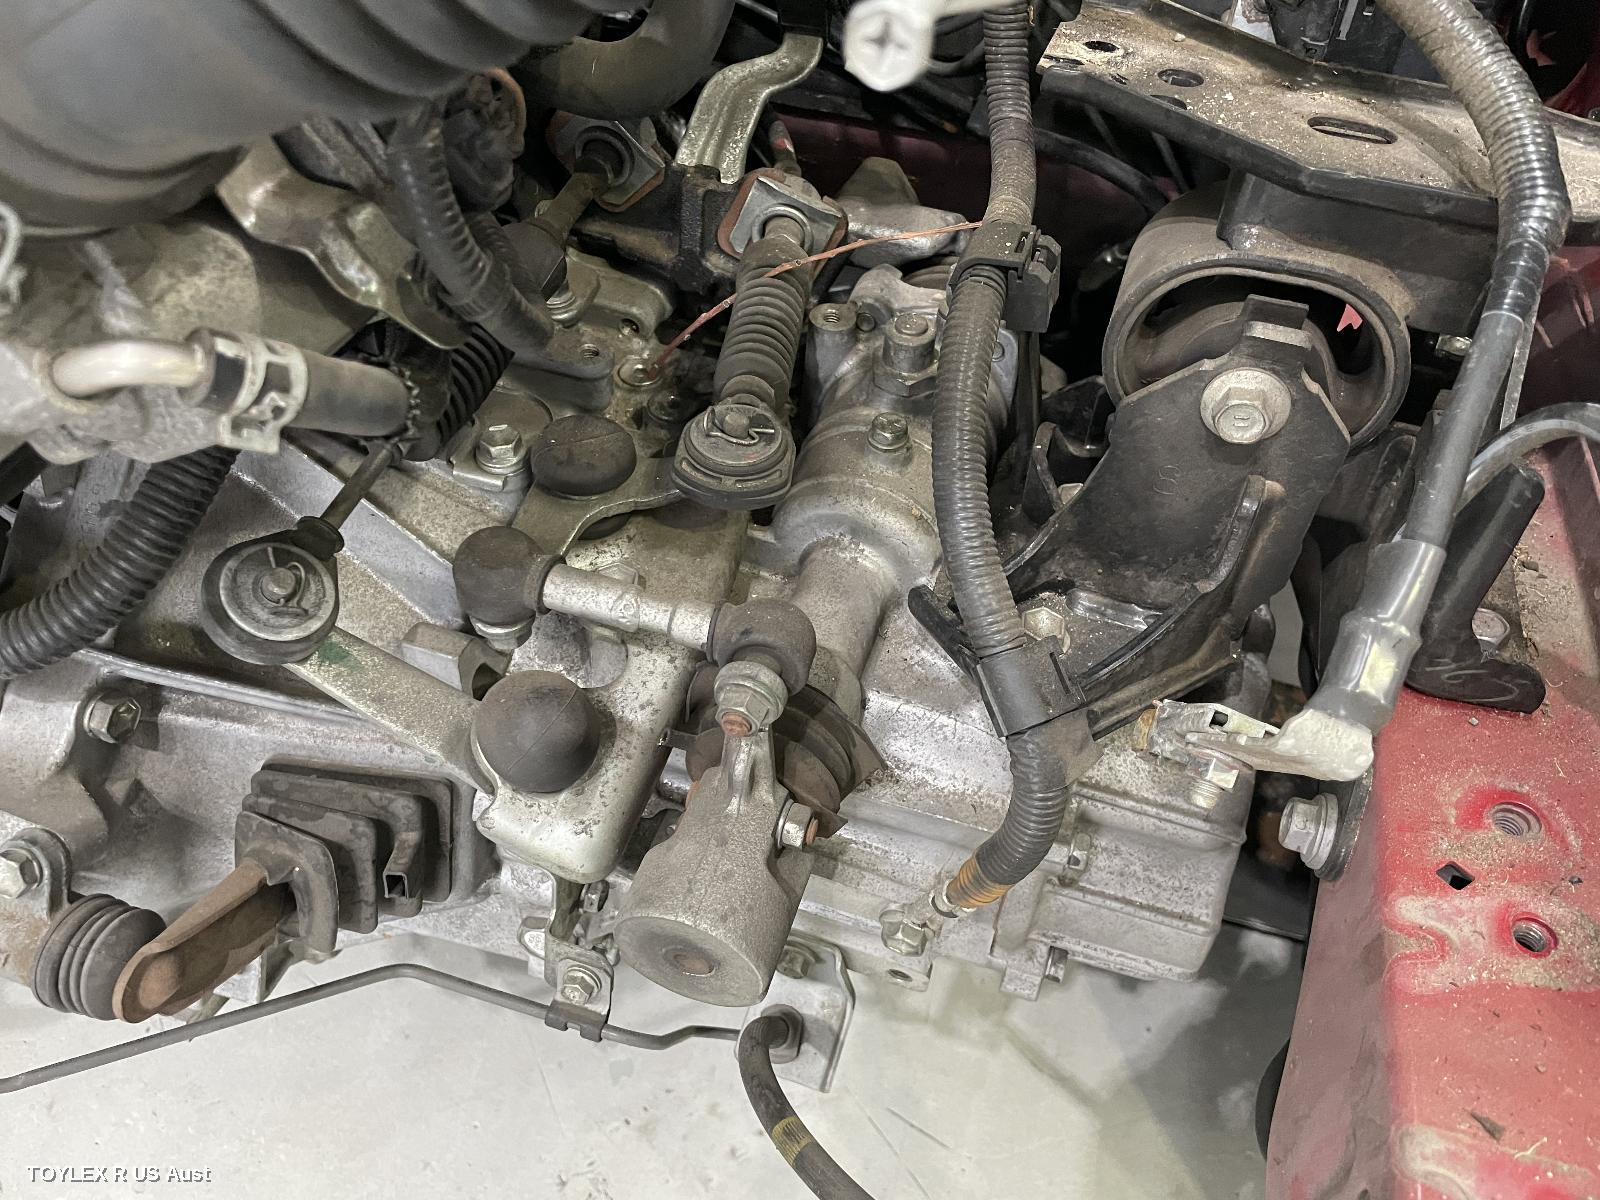 TOYOTA YARIS, Trans/Gearbox, MANUAL, 1.5, 1NZ, NCP9#-NCP13#, 10/05-12/19 (AUS ONLY)